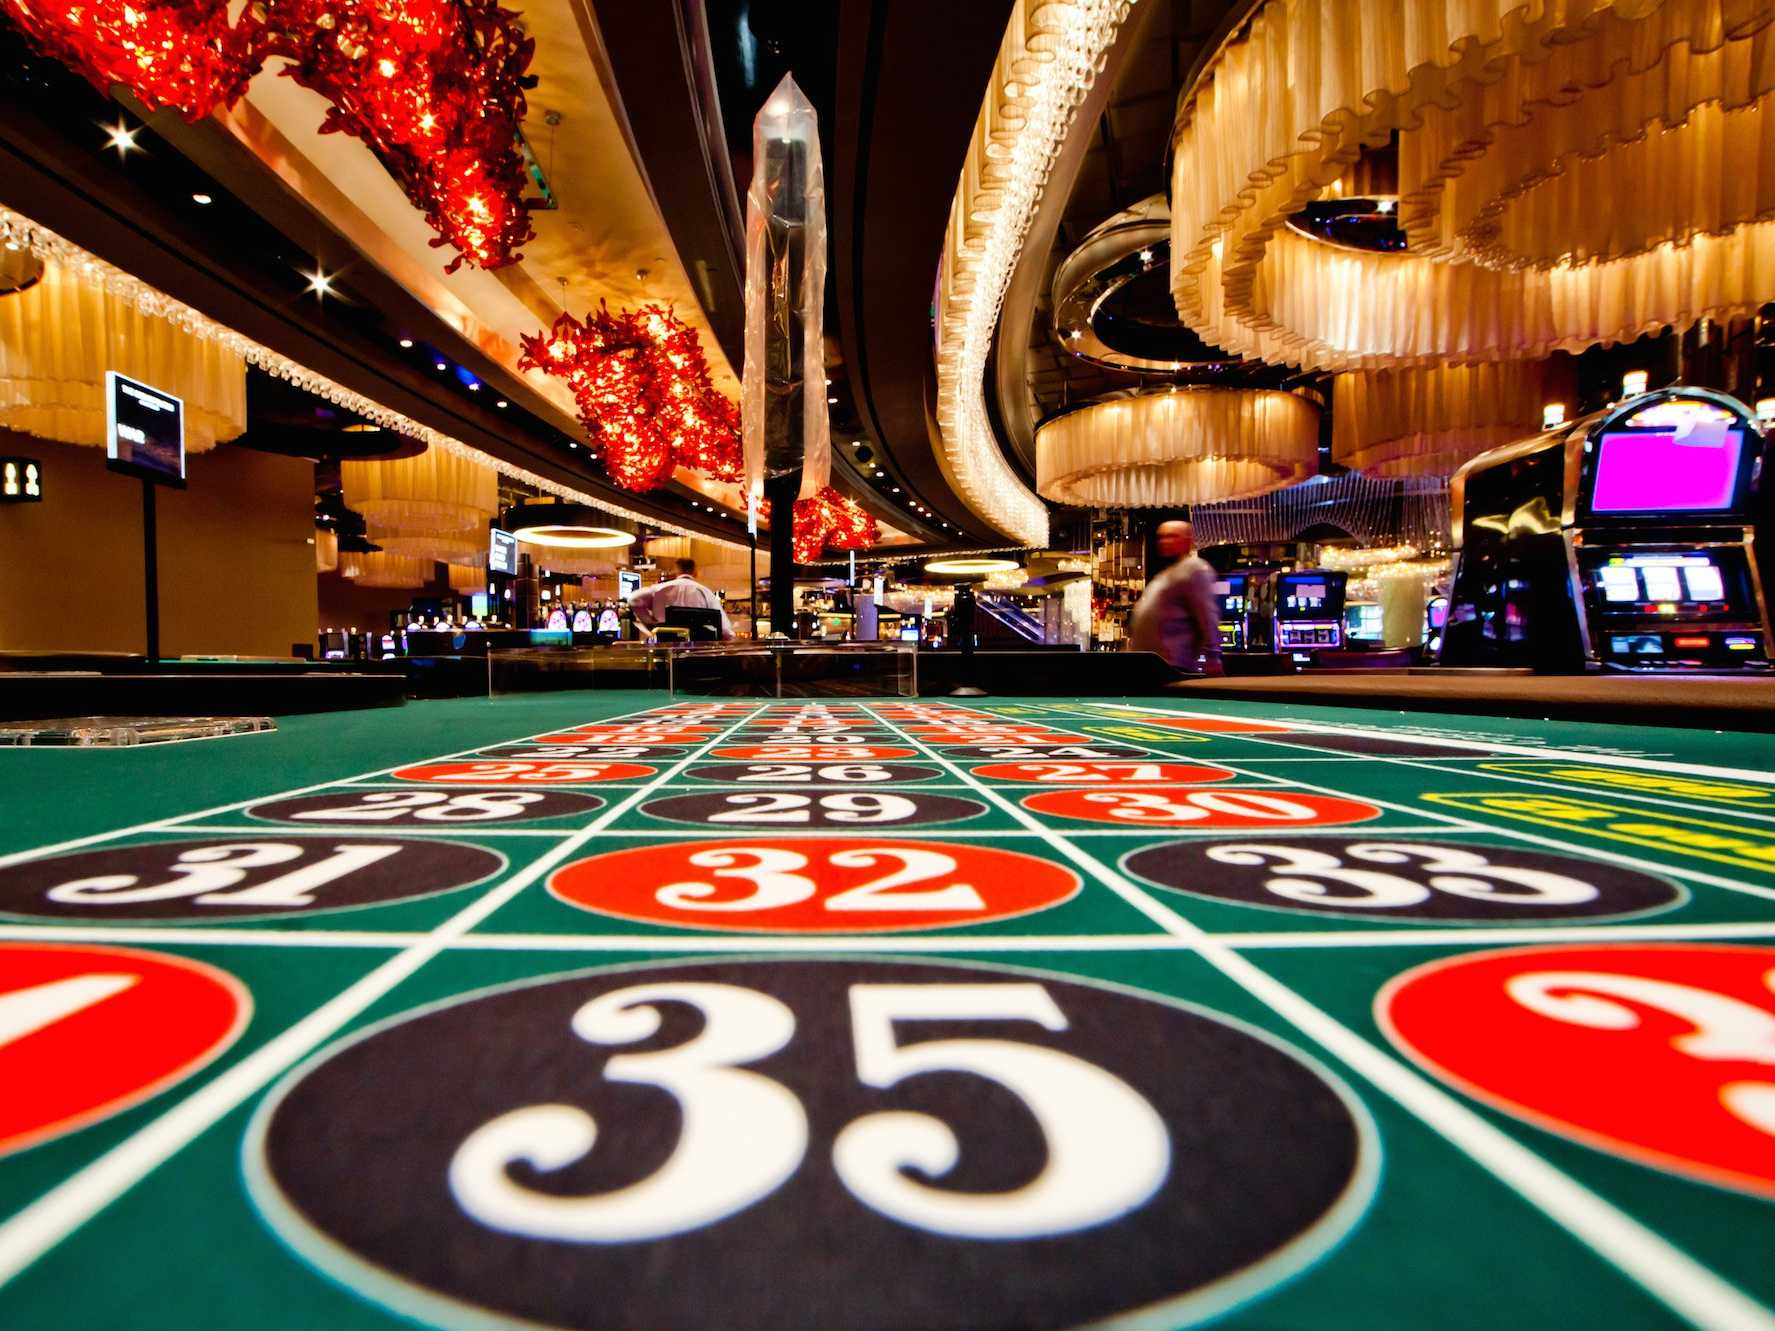 A Review of the Popular Online Casino, Cleopatra Casino